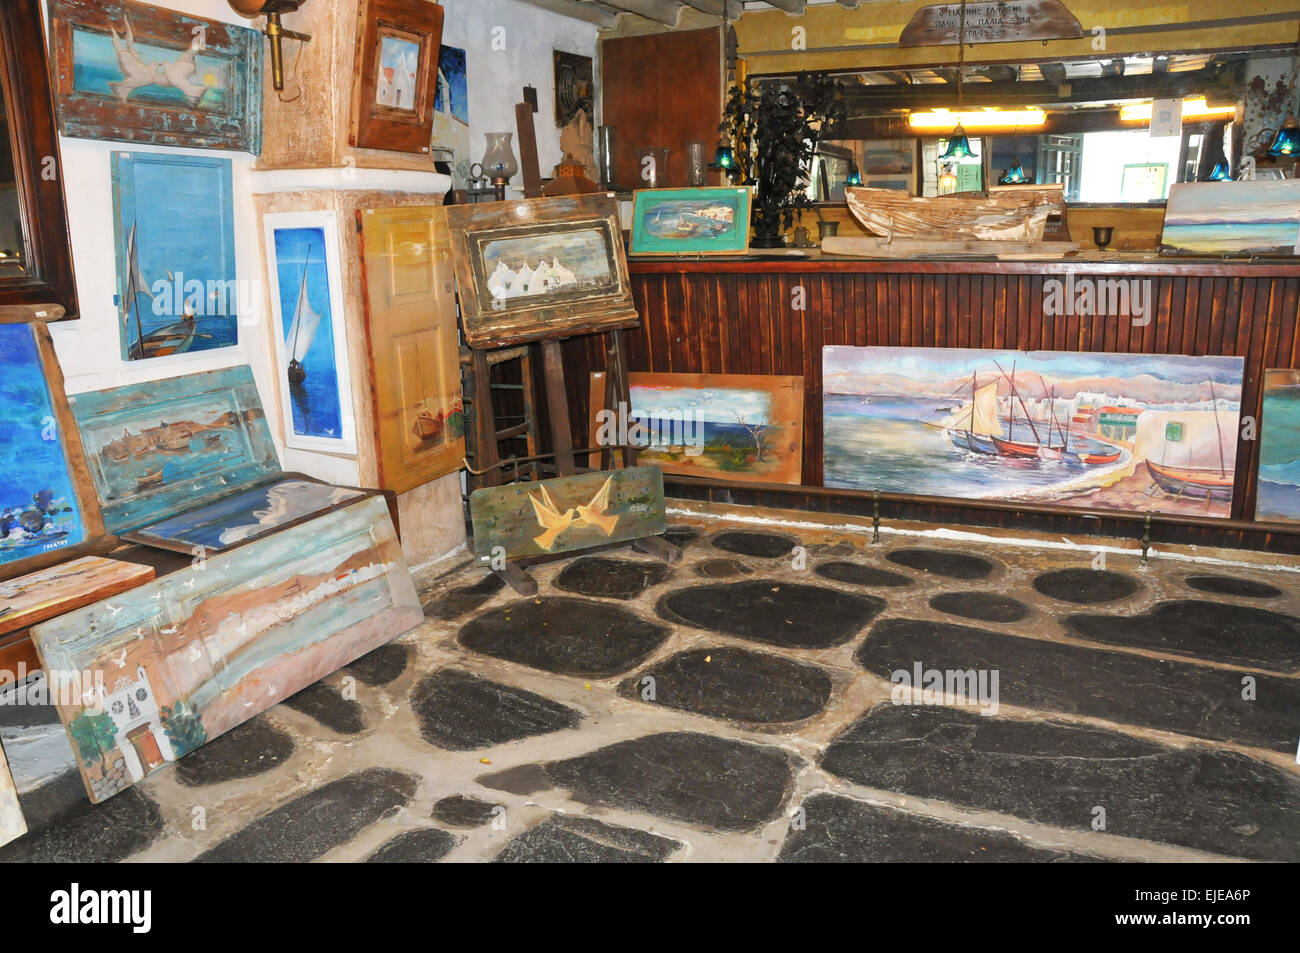 Art store with paintings in Mykonos Gre,ece. - Stock Image